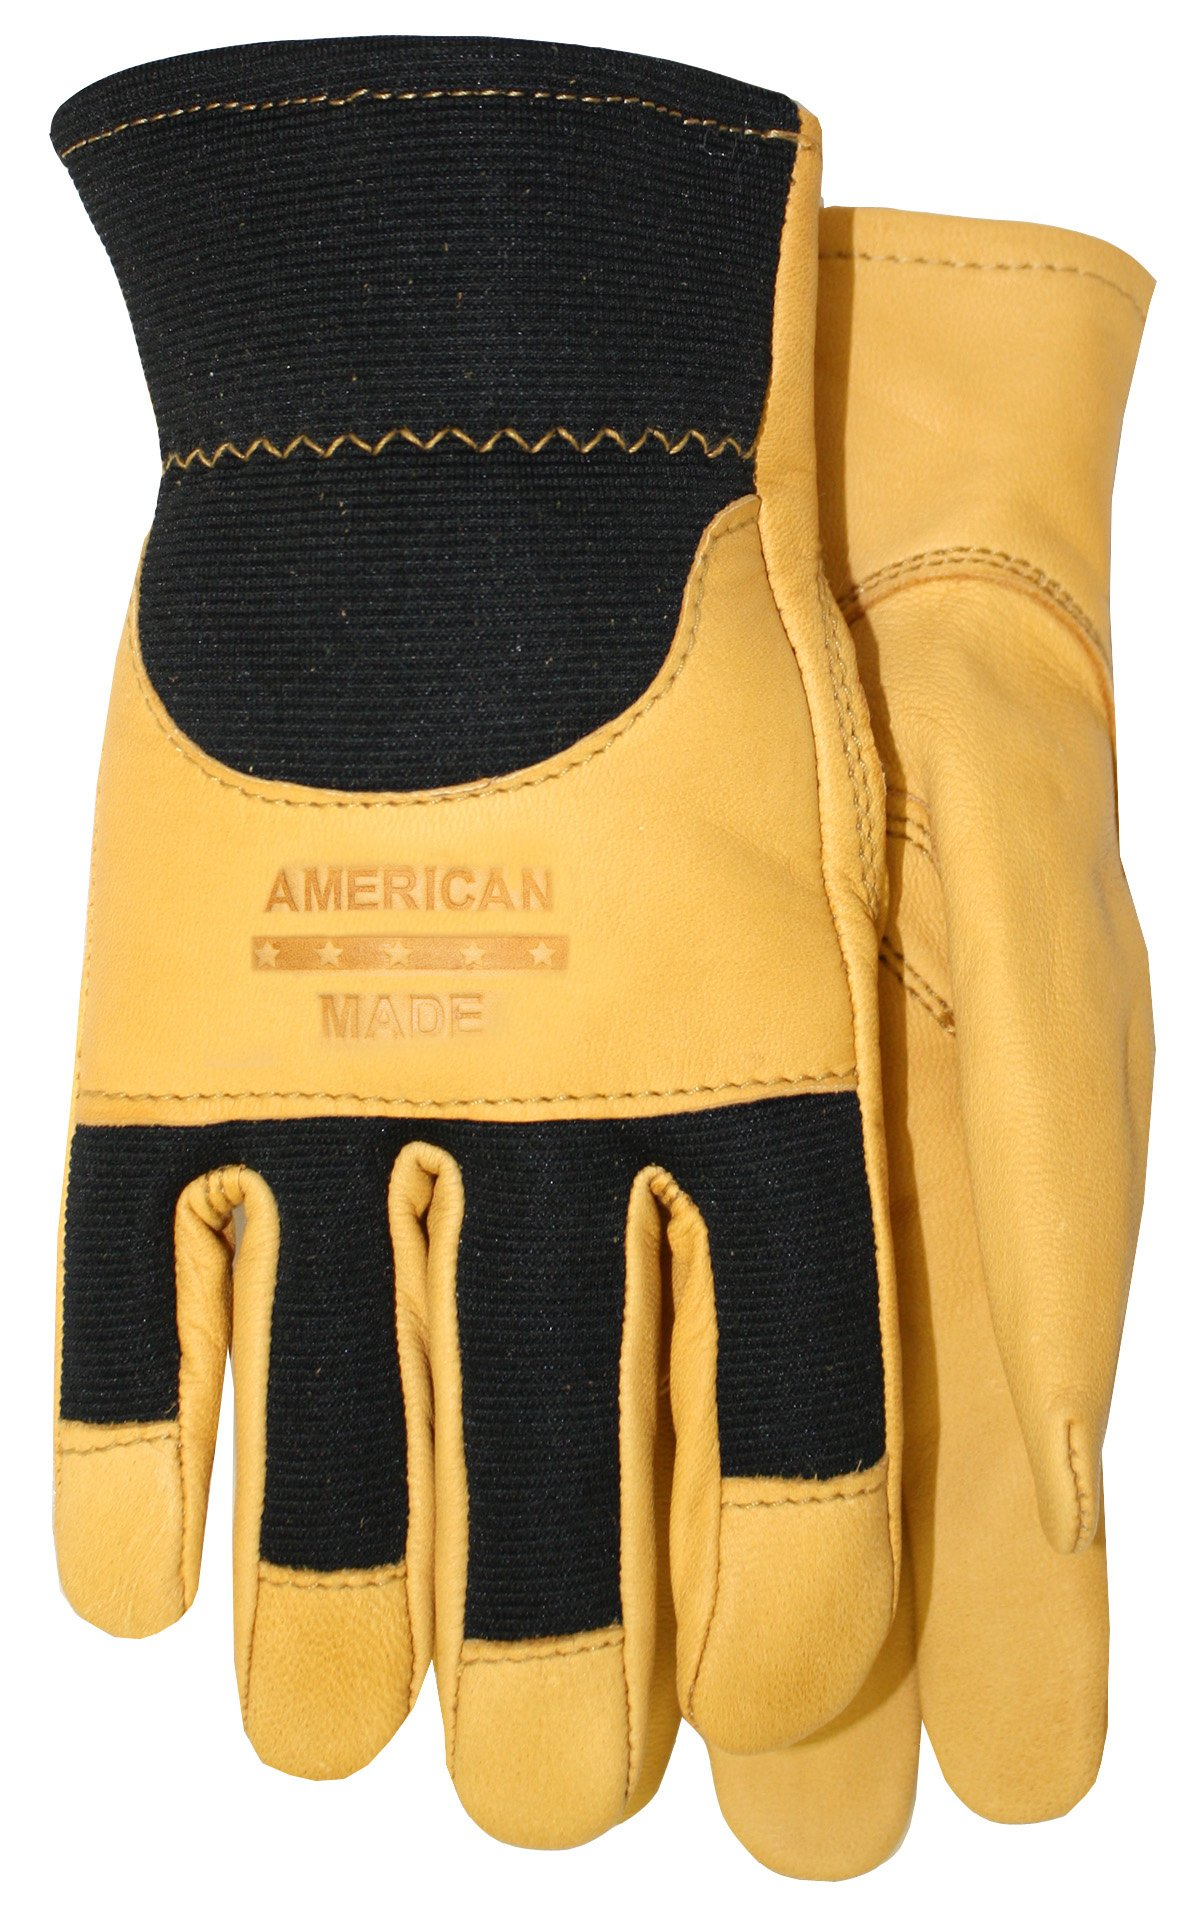 American Made Goatskin Leather Spandex Work Gloves with Knuckle Strap and Leather Palm, 175, Size: Large